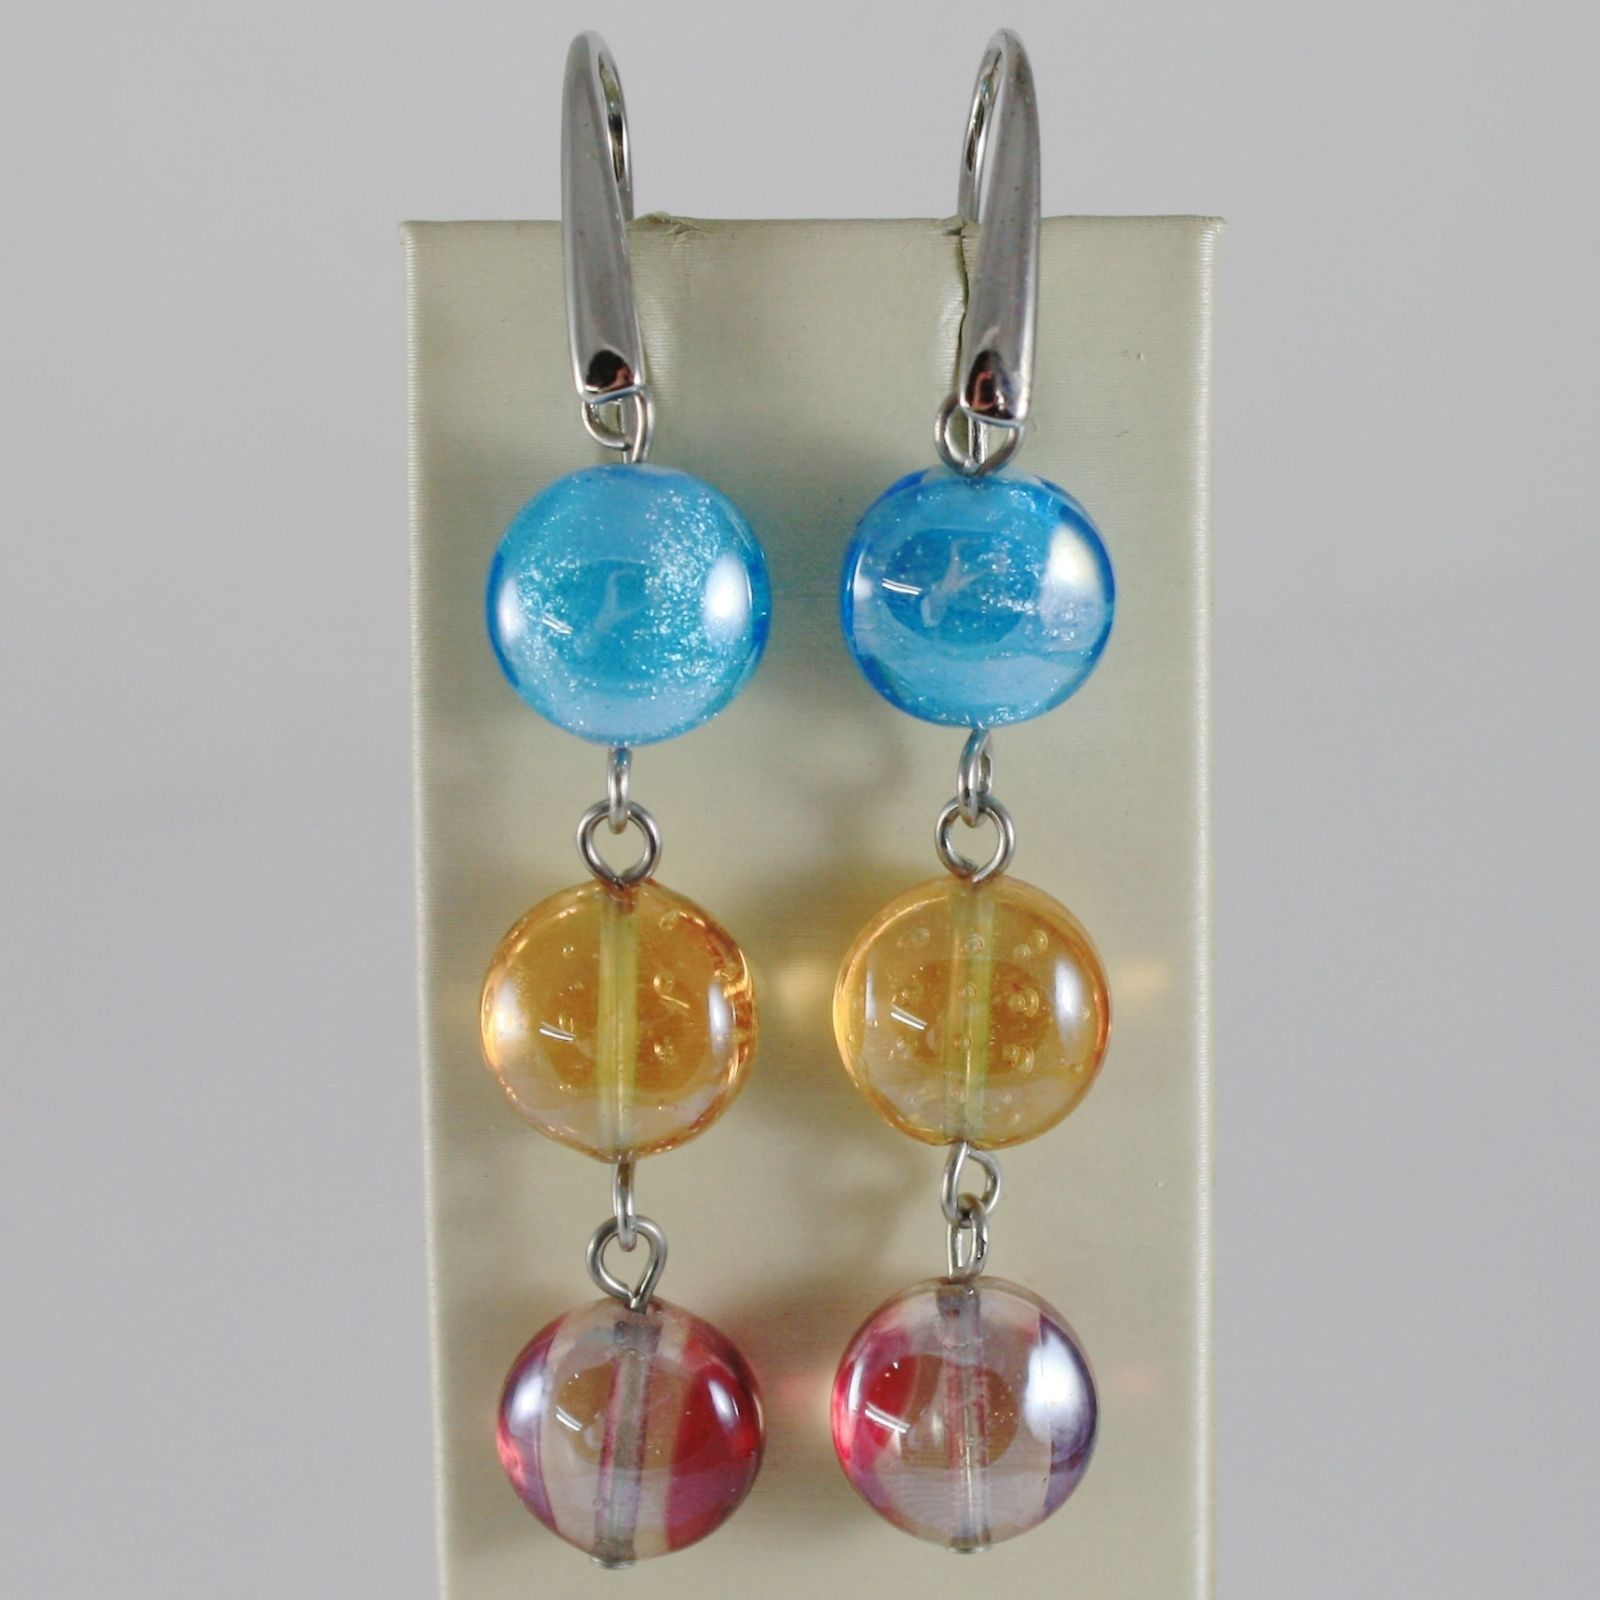 ANTICA MURRINA VENEZIA PENDANT EARRINGS ORANGE BLUE RED TRIPLE DISC